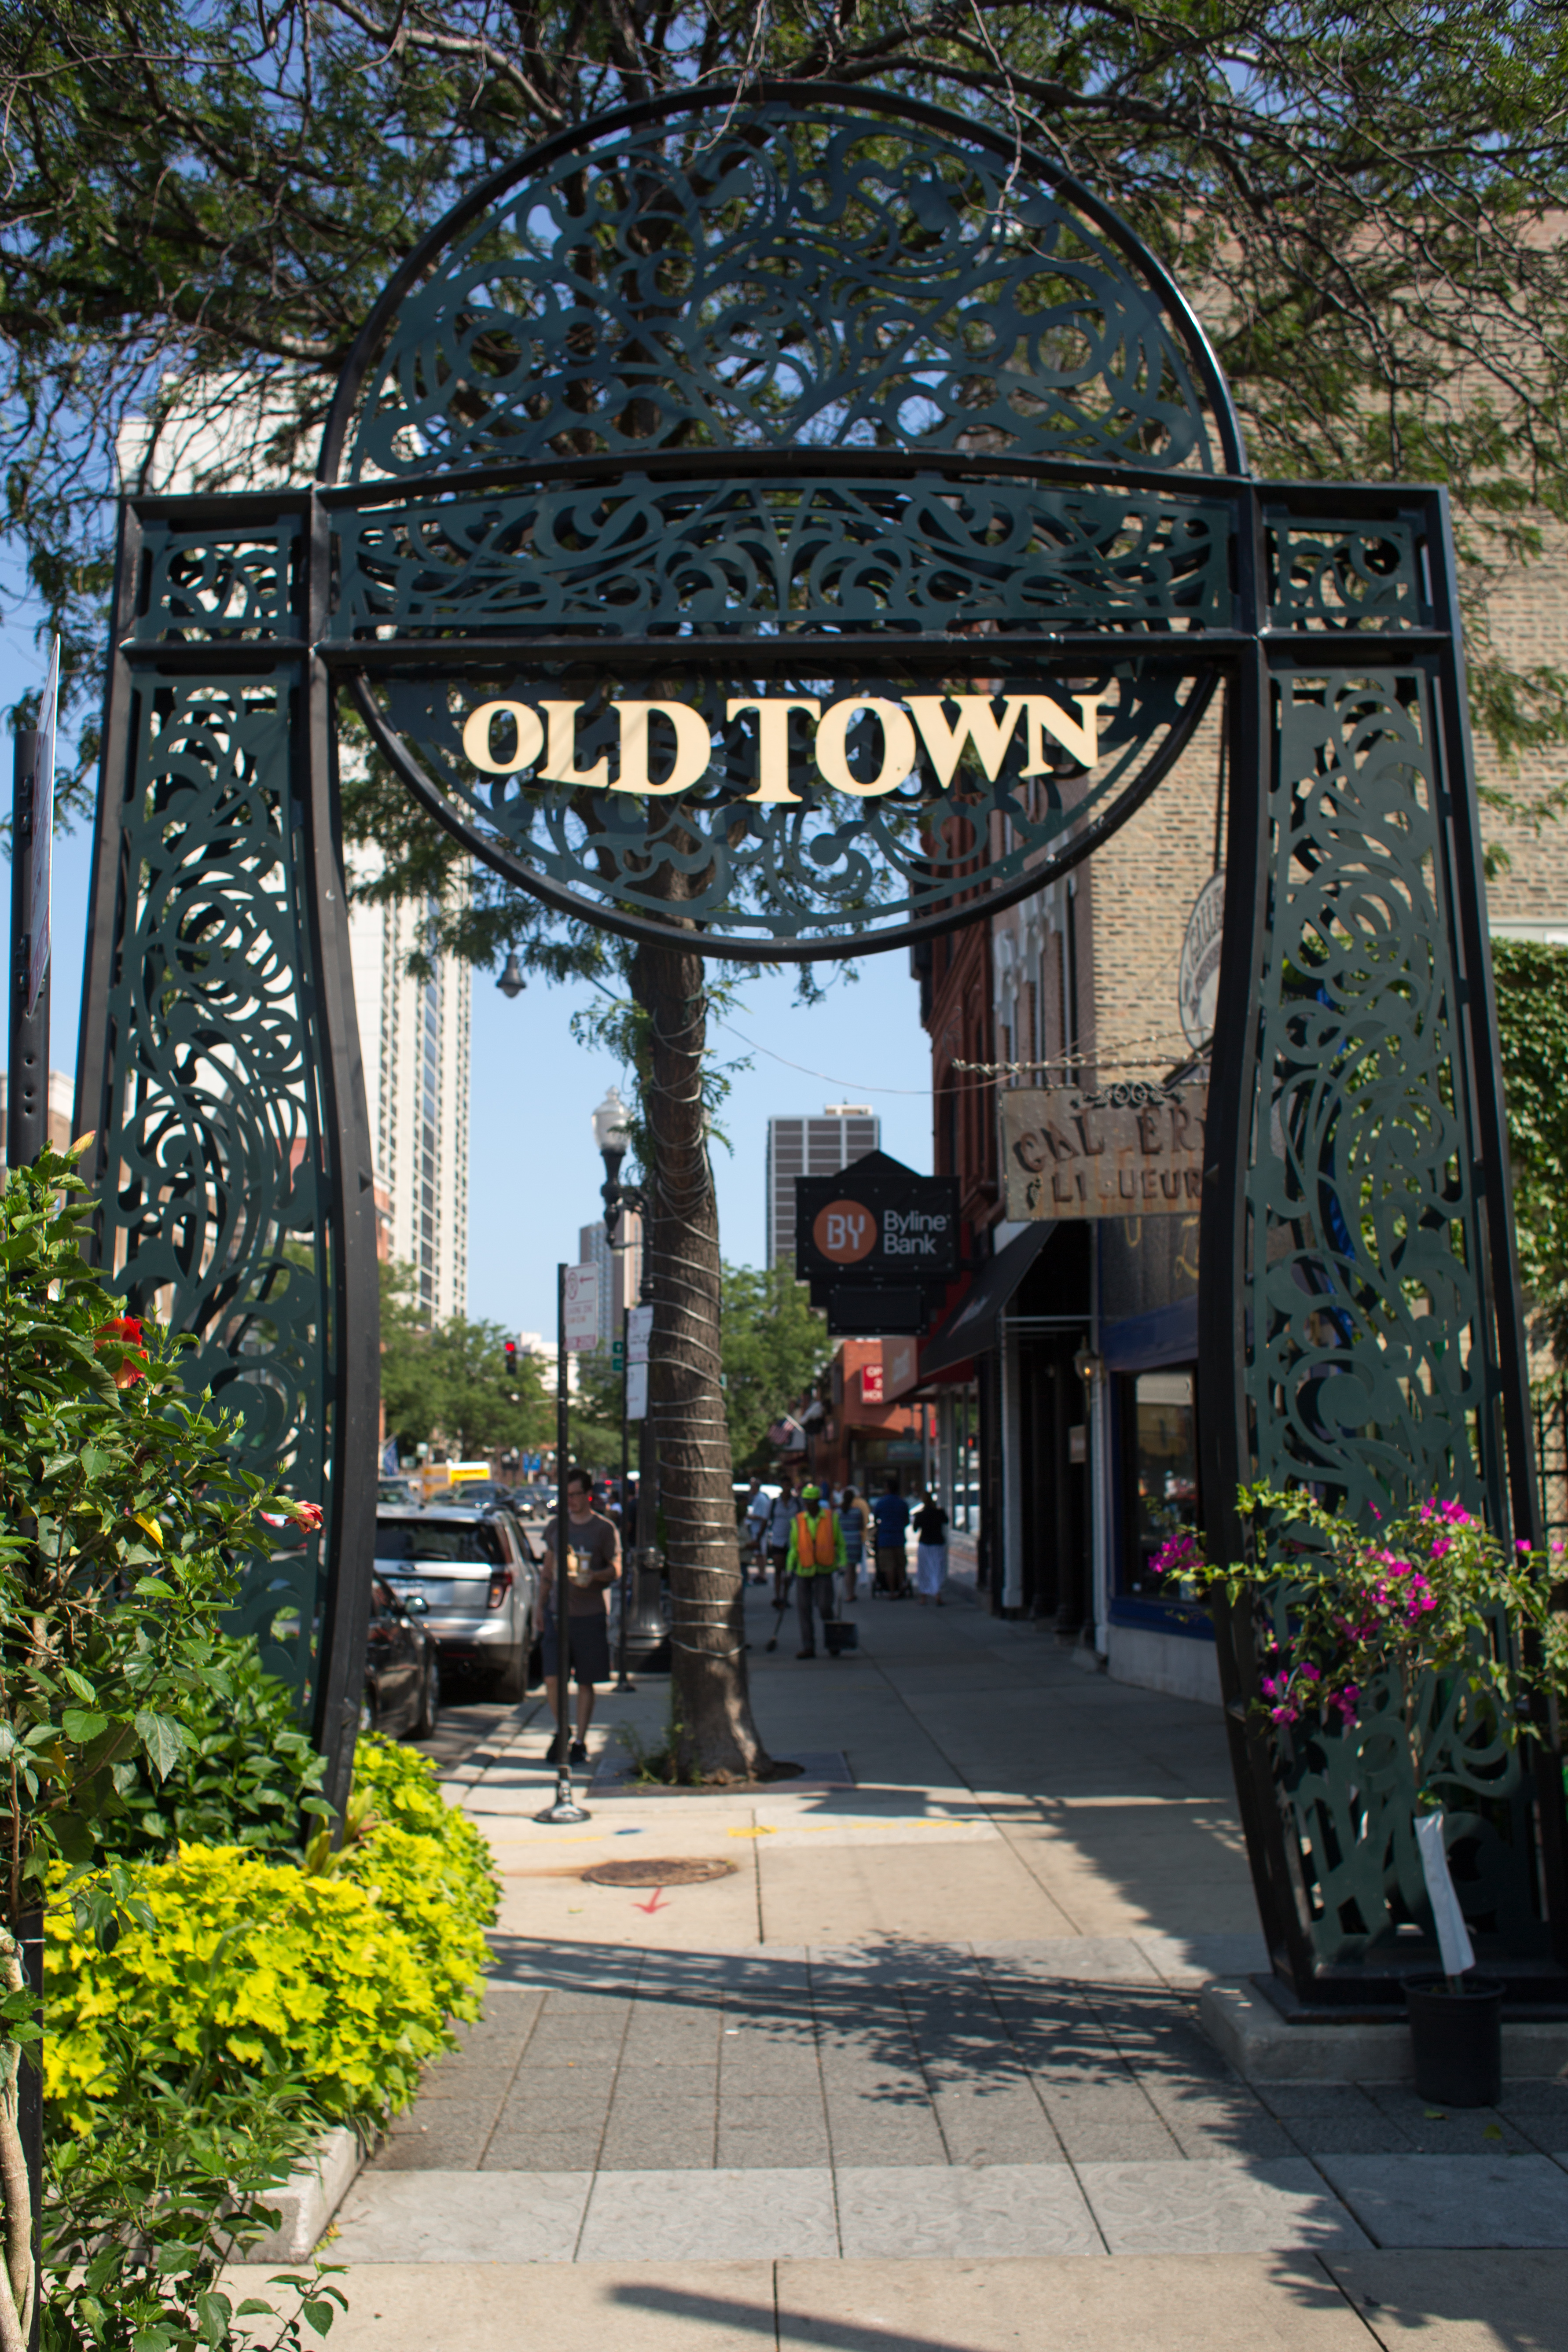 Is oldtown good for dating chicago